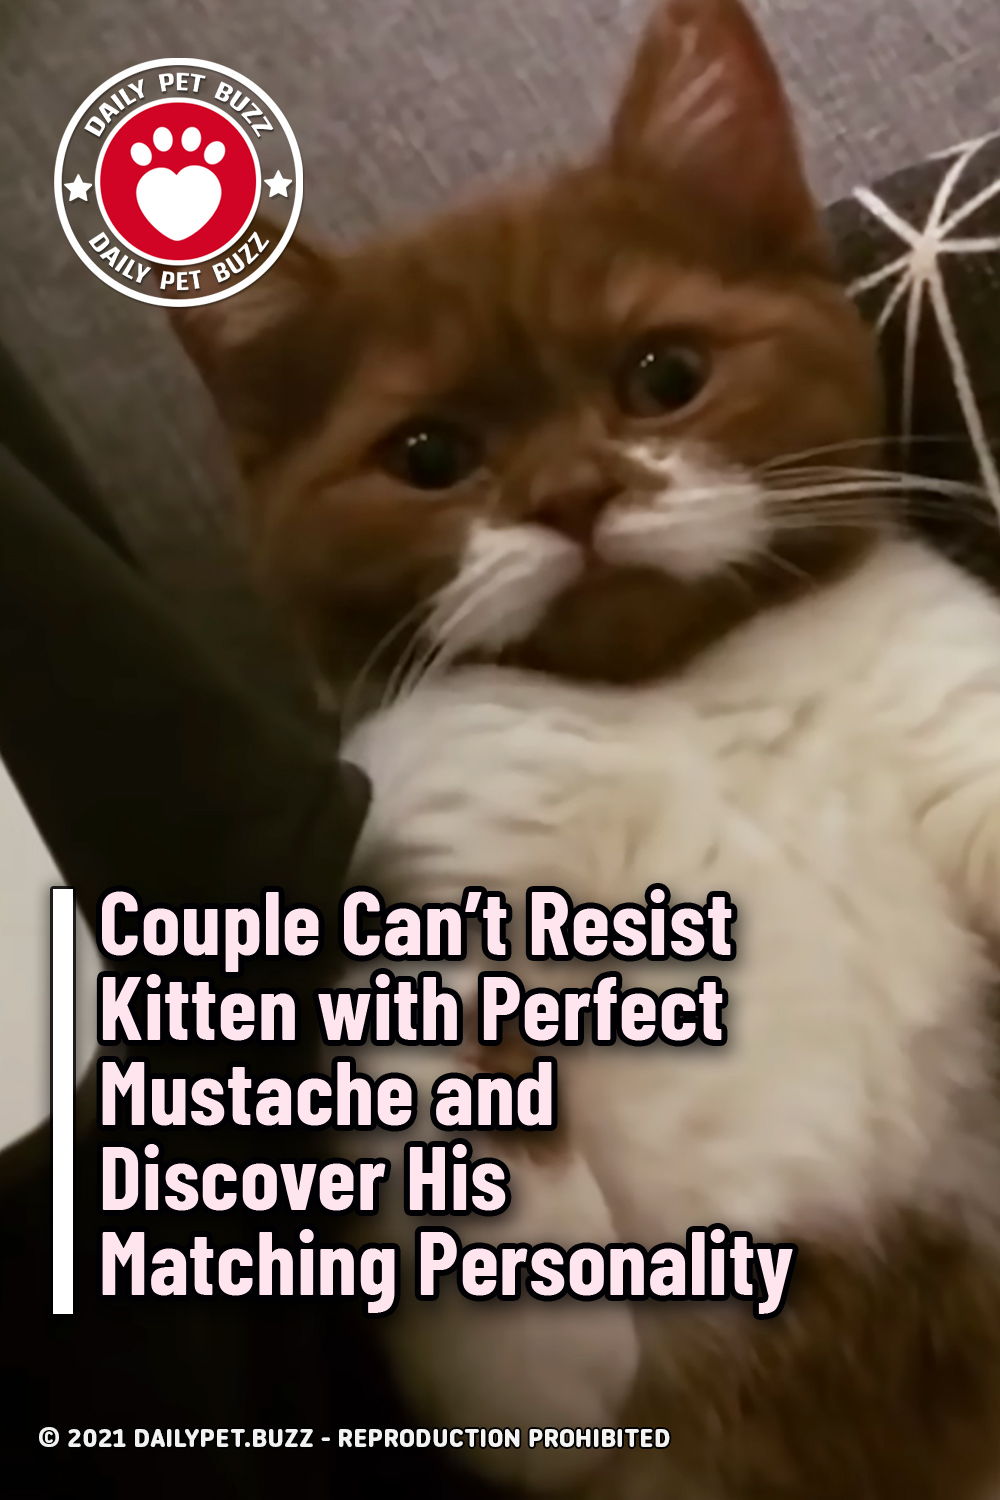 Couple Can't Resist Kitten with Perfect Mustache and Discover His Matching Personality